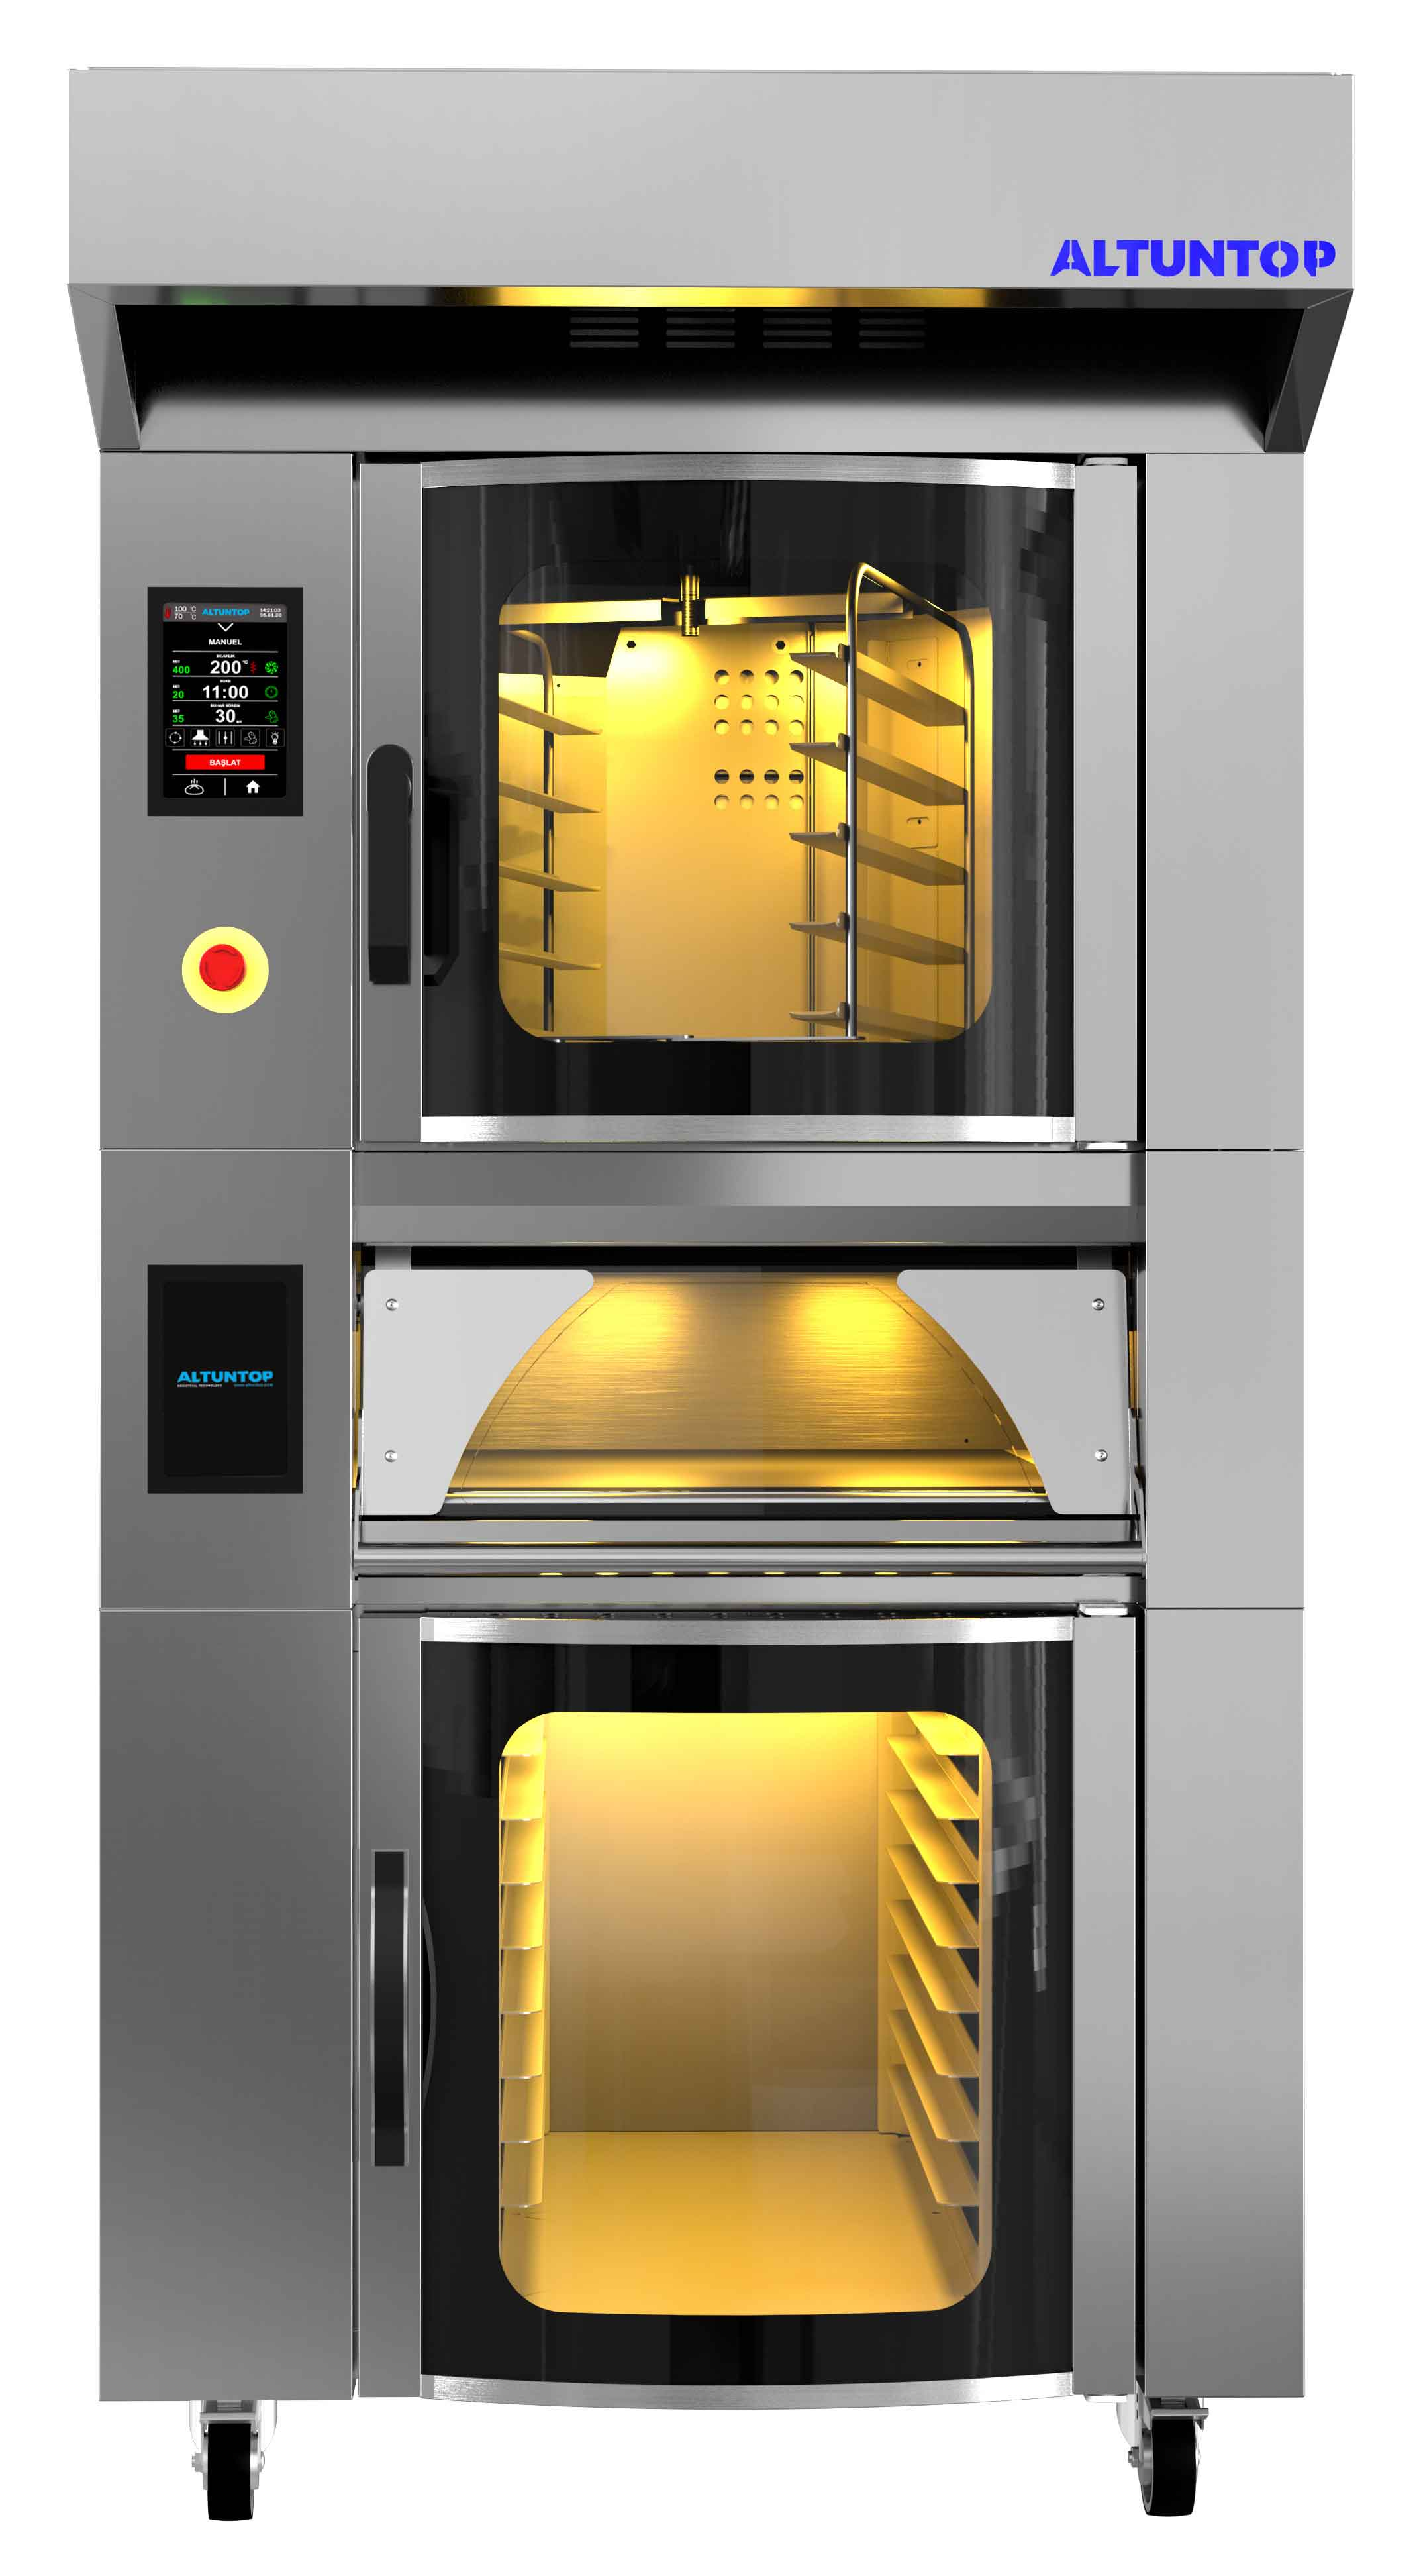 CONBACT+PASTRY OVEN